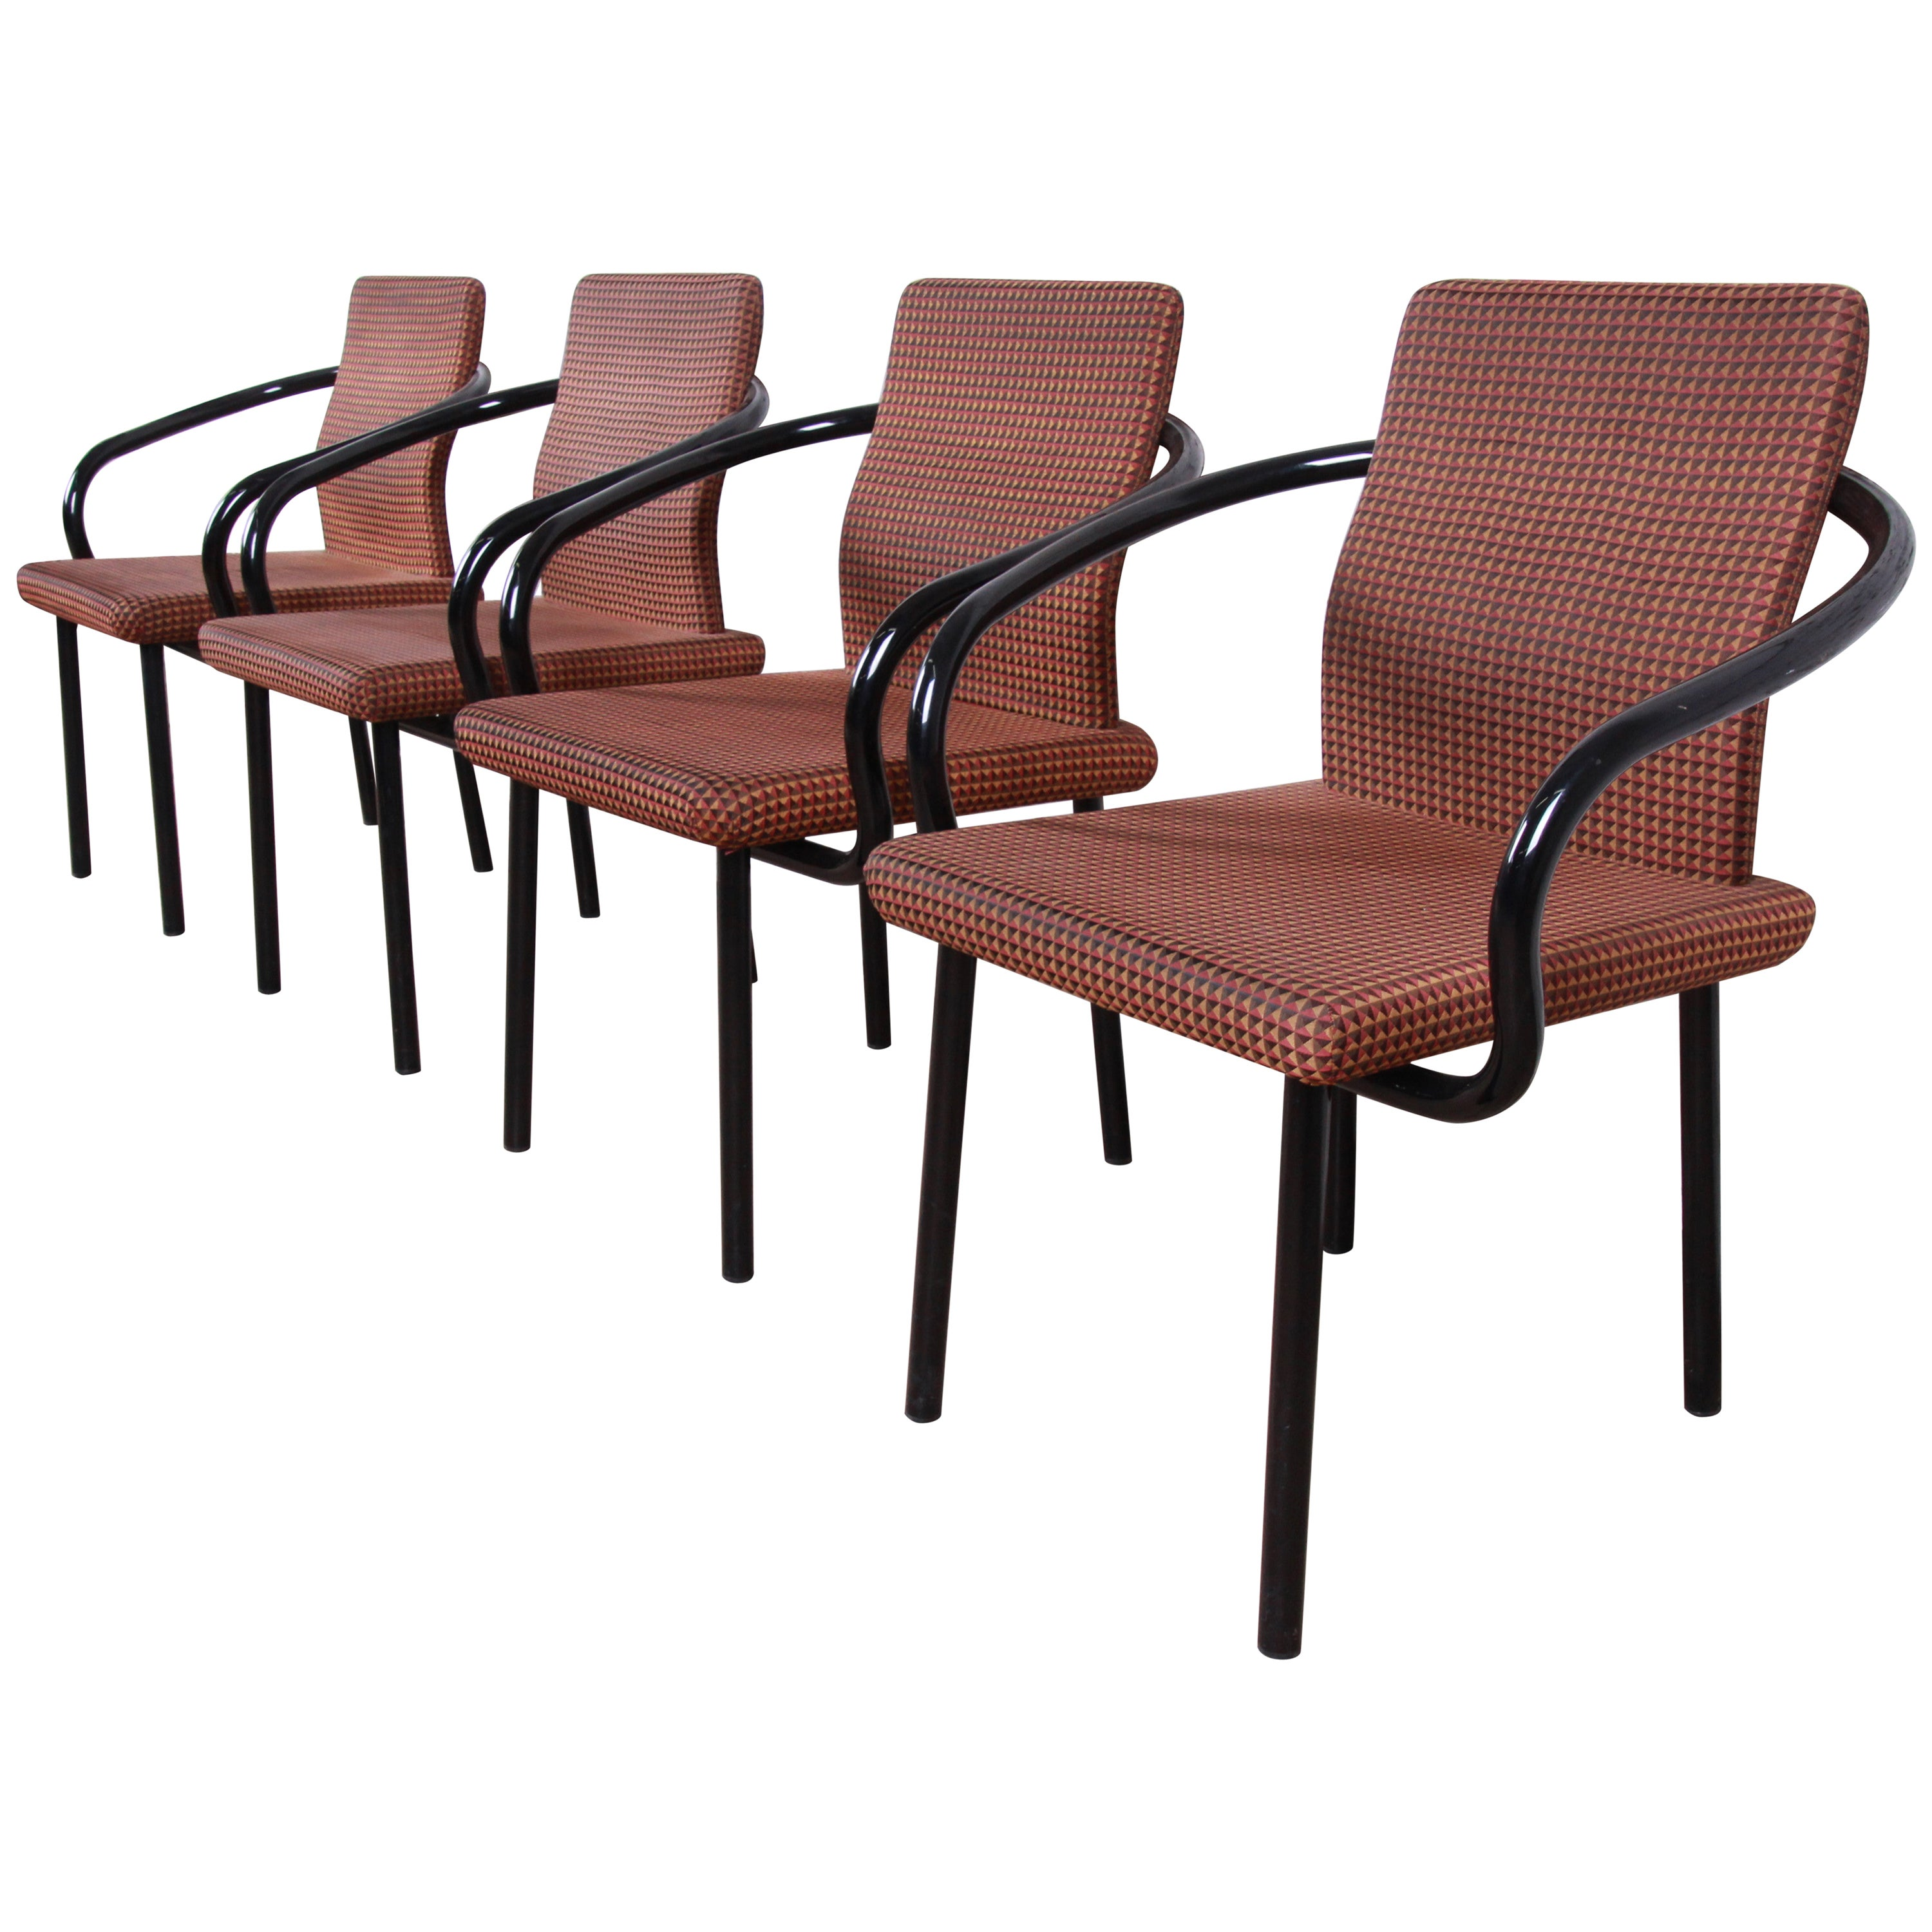 Ettore Sottsass for Knoll Mandarin Armchairs, Set of Four